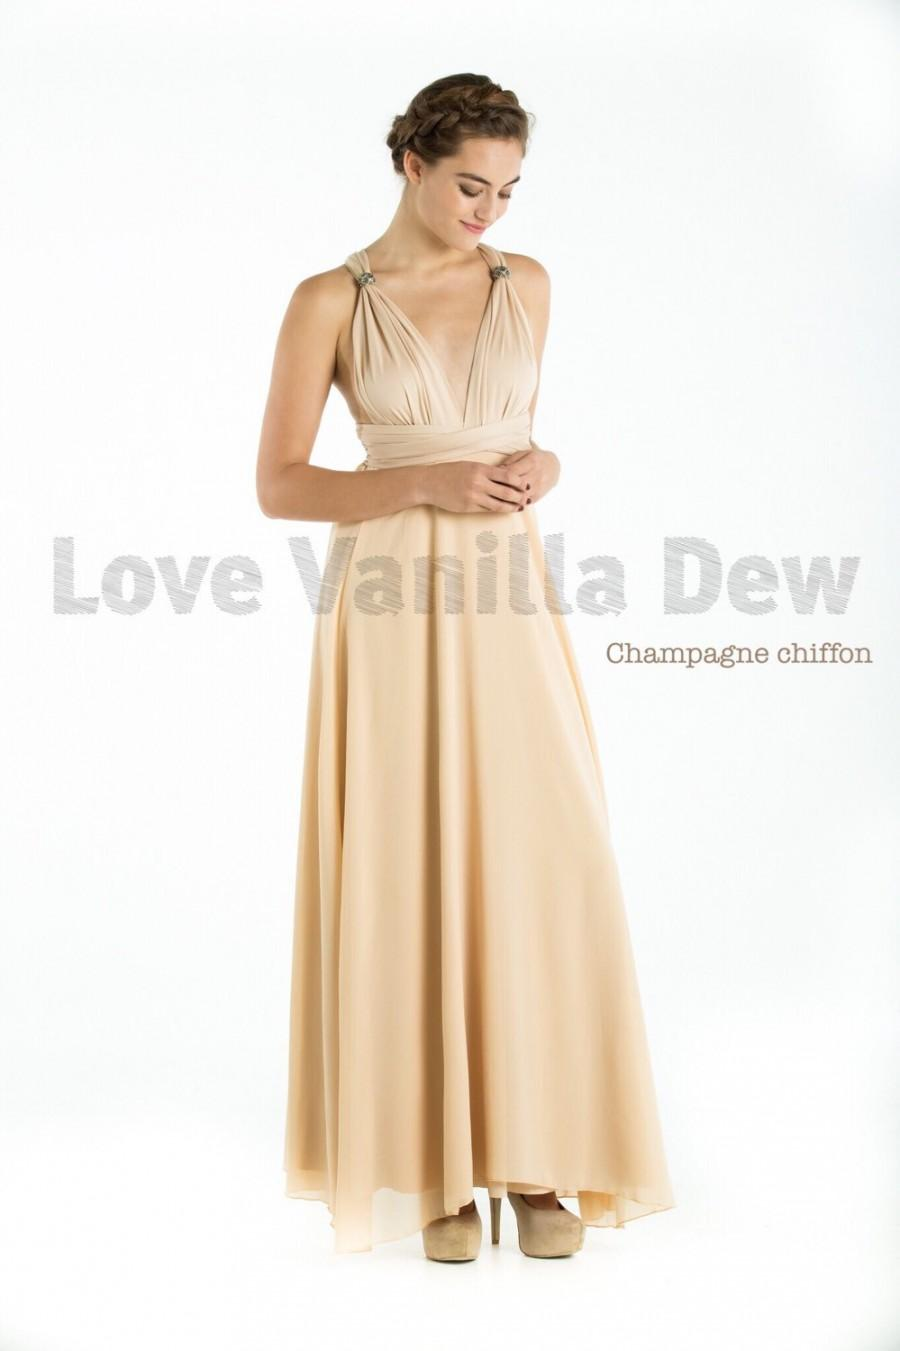 Wedding - Bridesmaid Dress Infinity Dress Champagne with Chiffon Overlay Floor Length Maxi Wrap Convertible Dress Wedding Dress